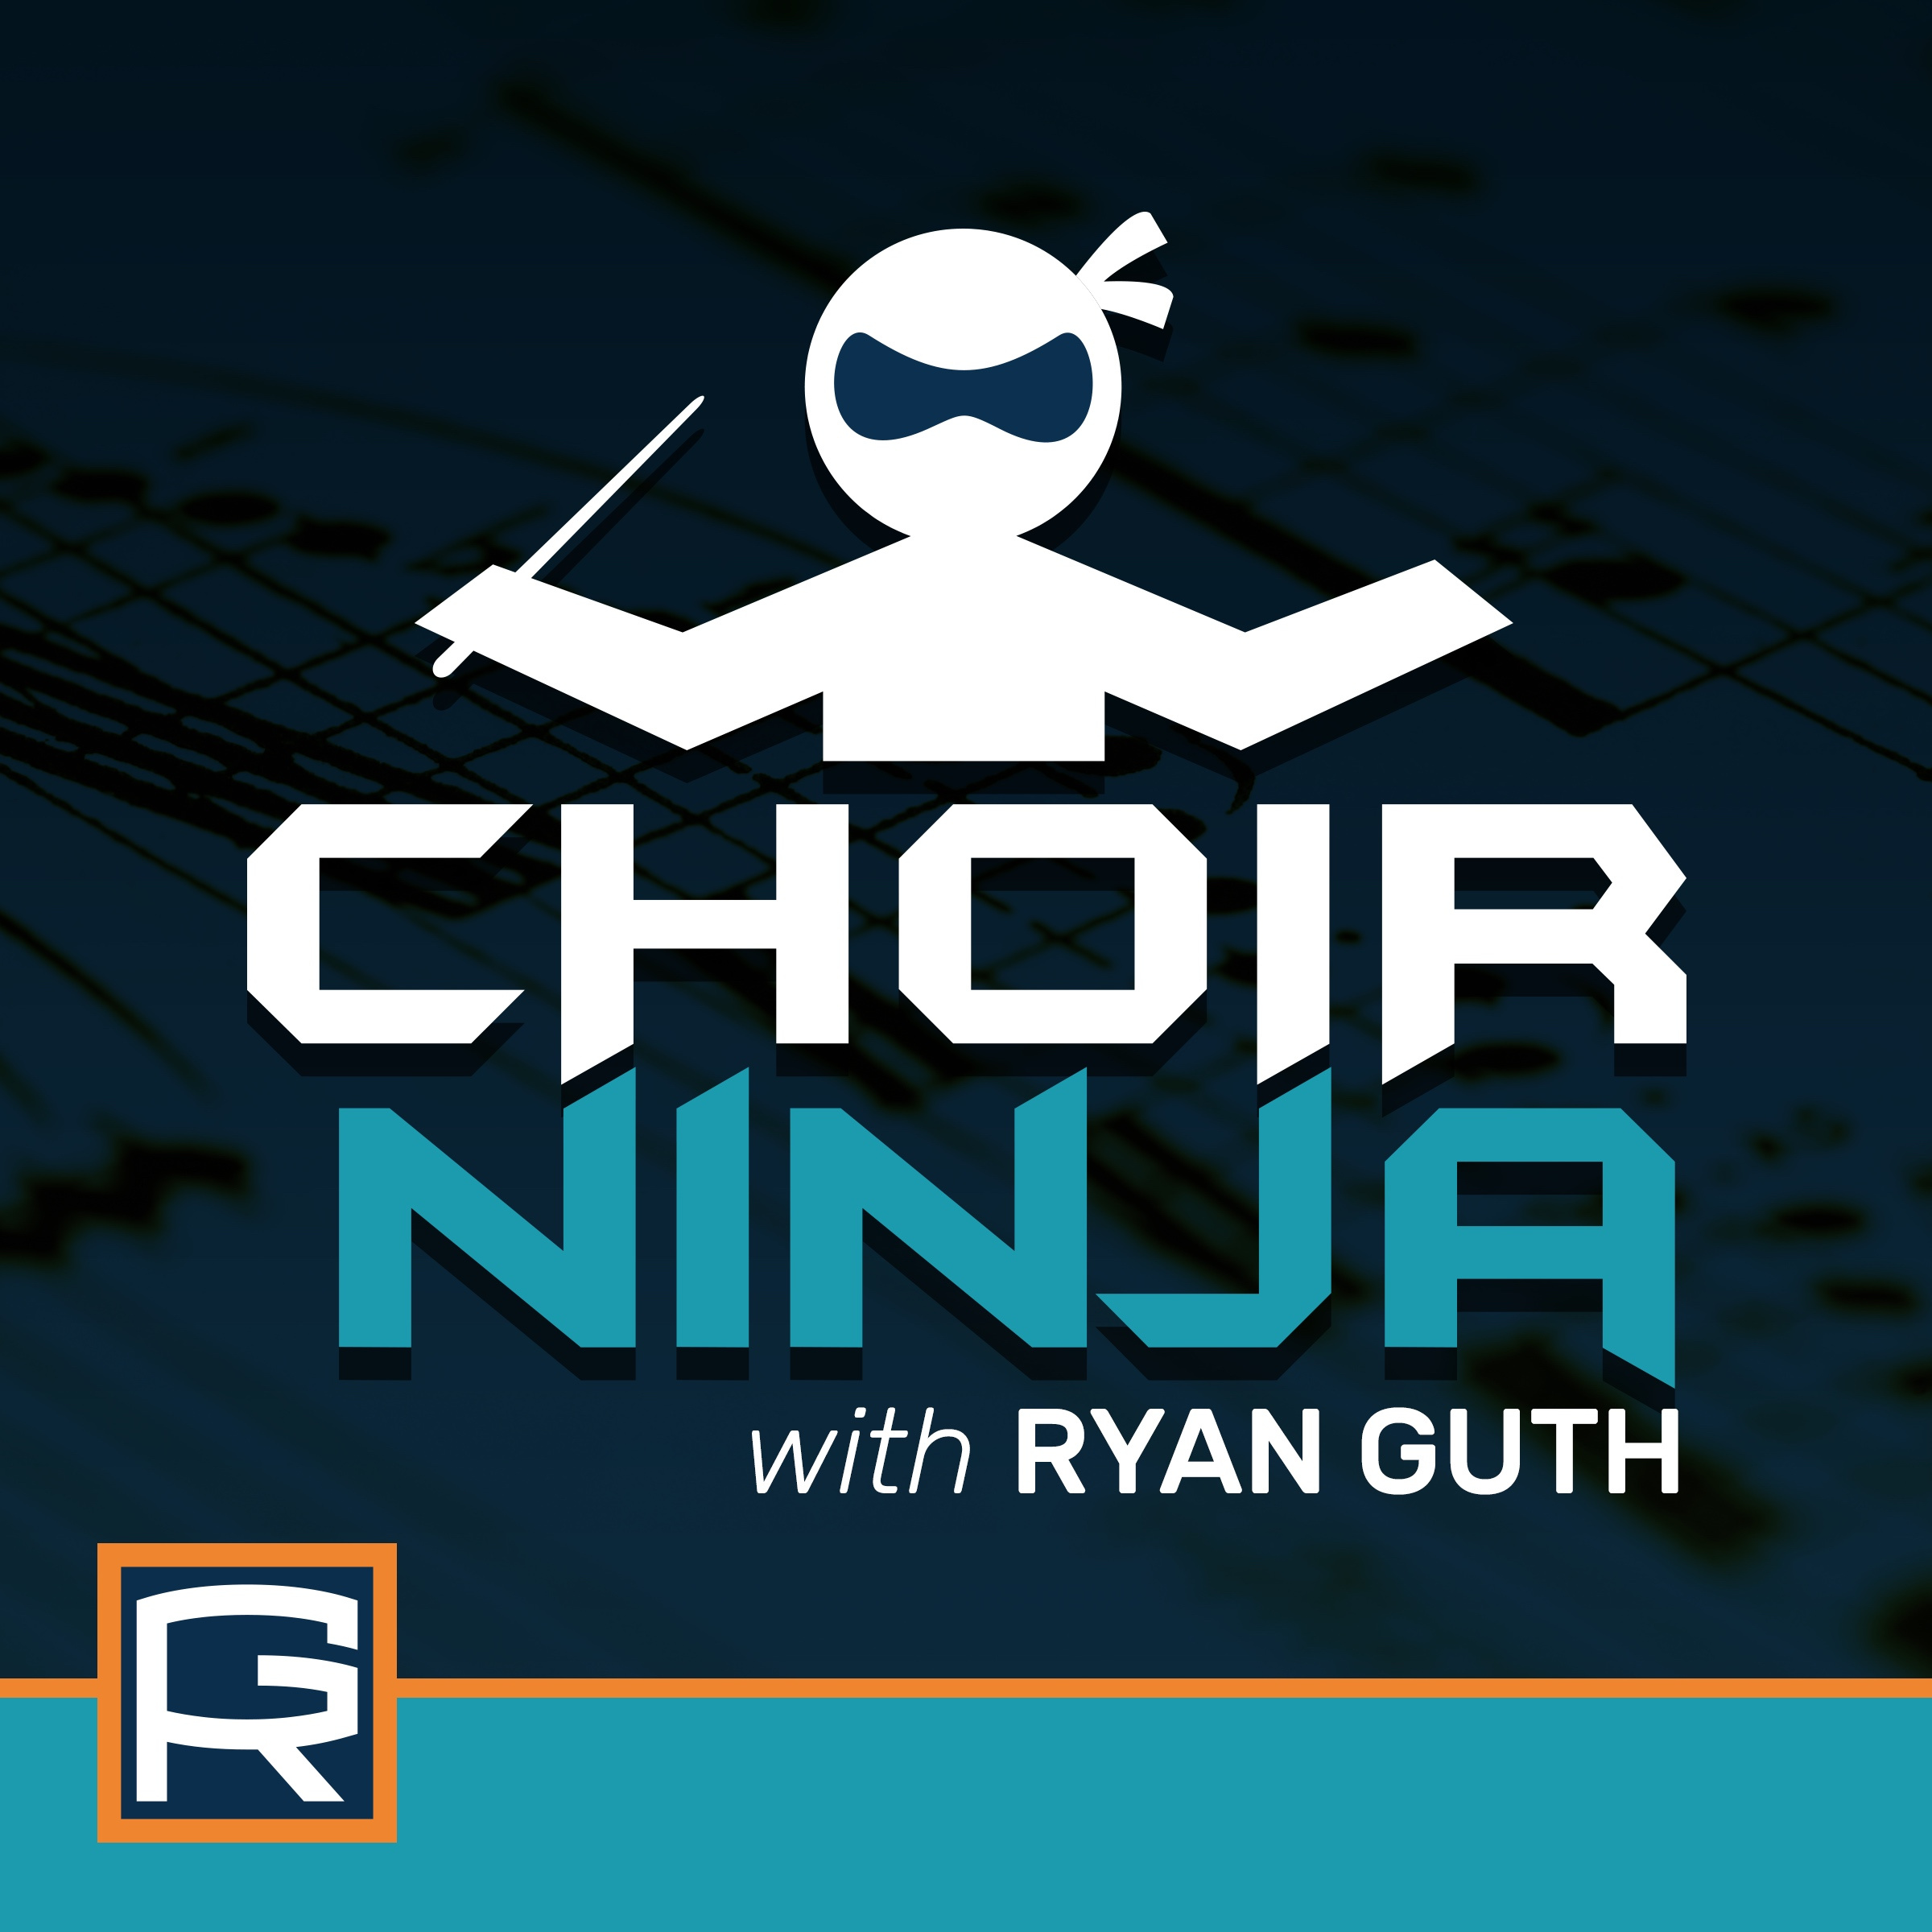 Choir Ninja, with Ryan Guth Logo